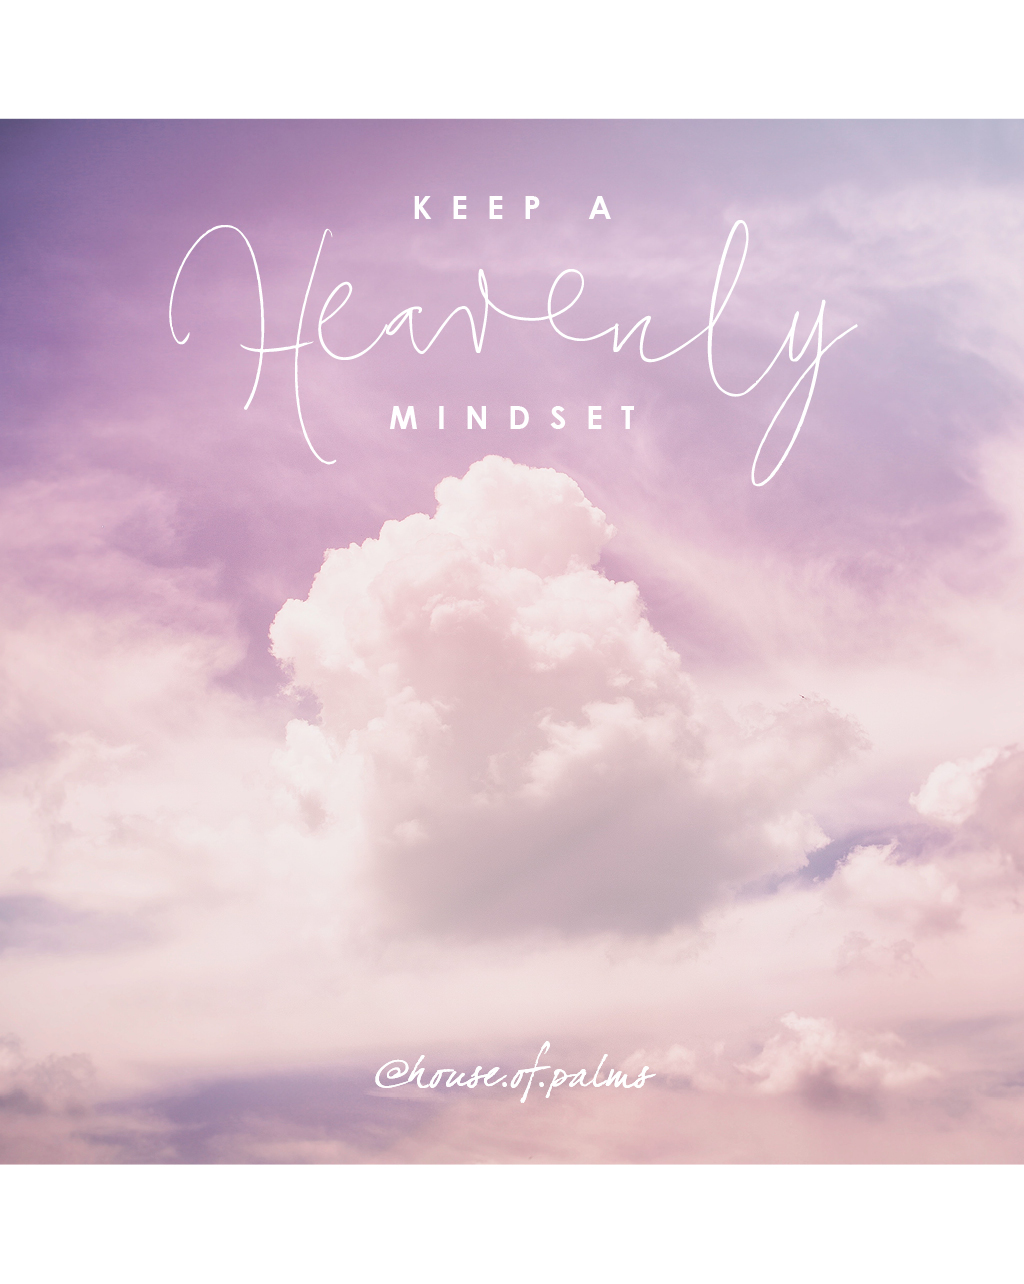 Overcoming fear - keep a heavenly mindset